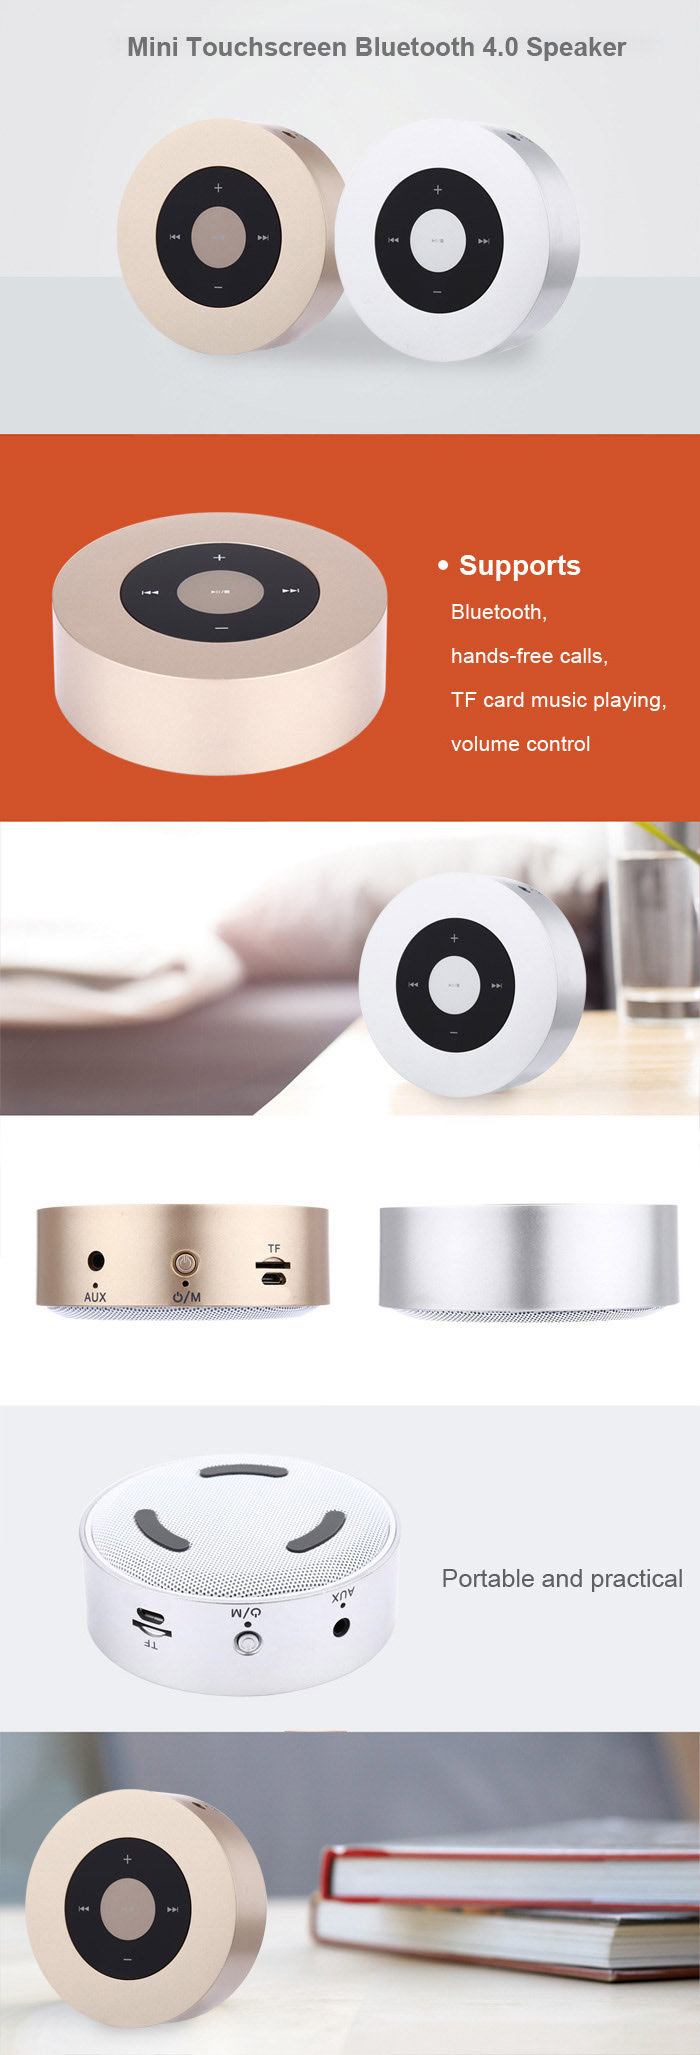 Bluetooth 4.0 Touchscreen Speaker Wireless Music Player Supporting TF Card Playing Hands-free Phone Call